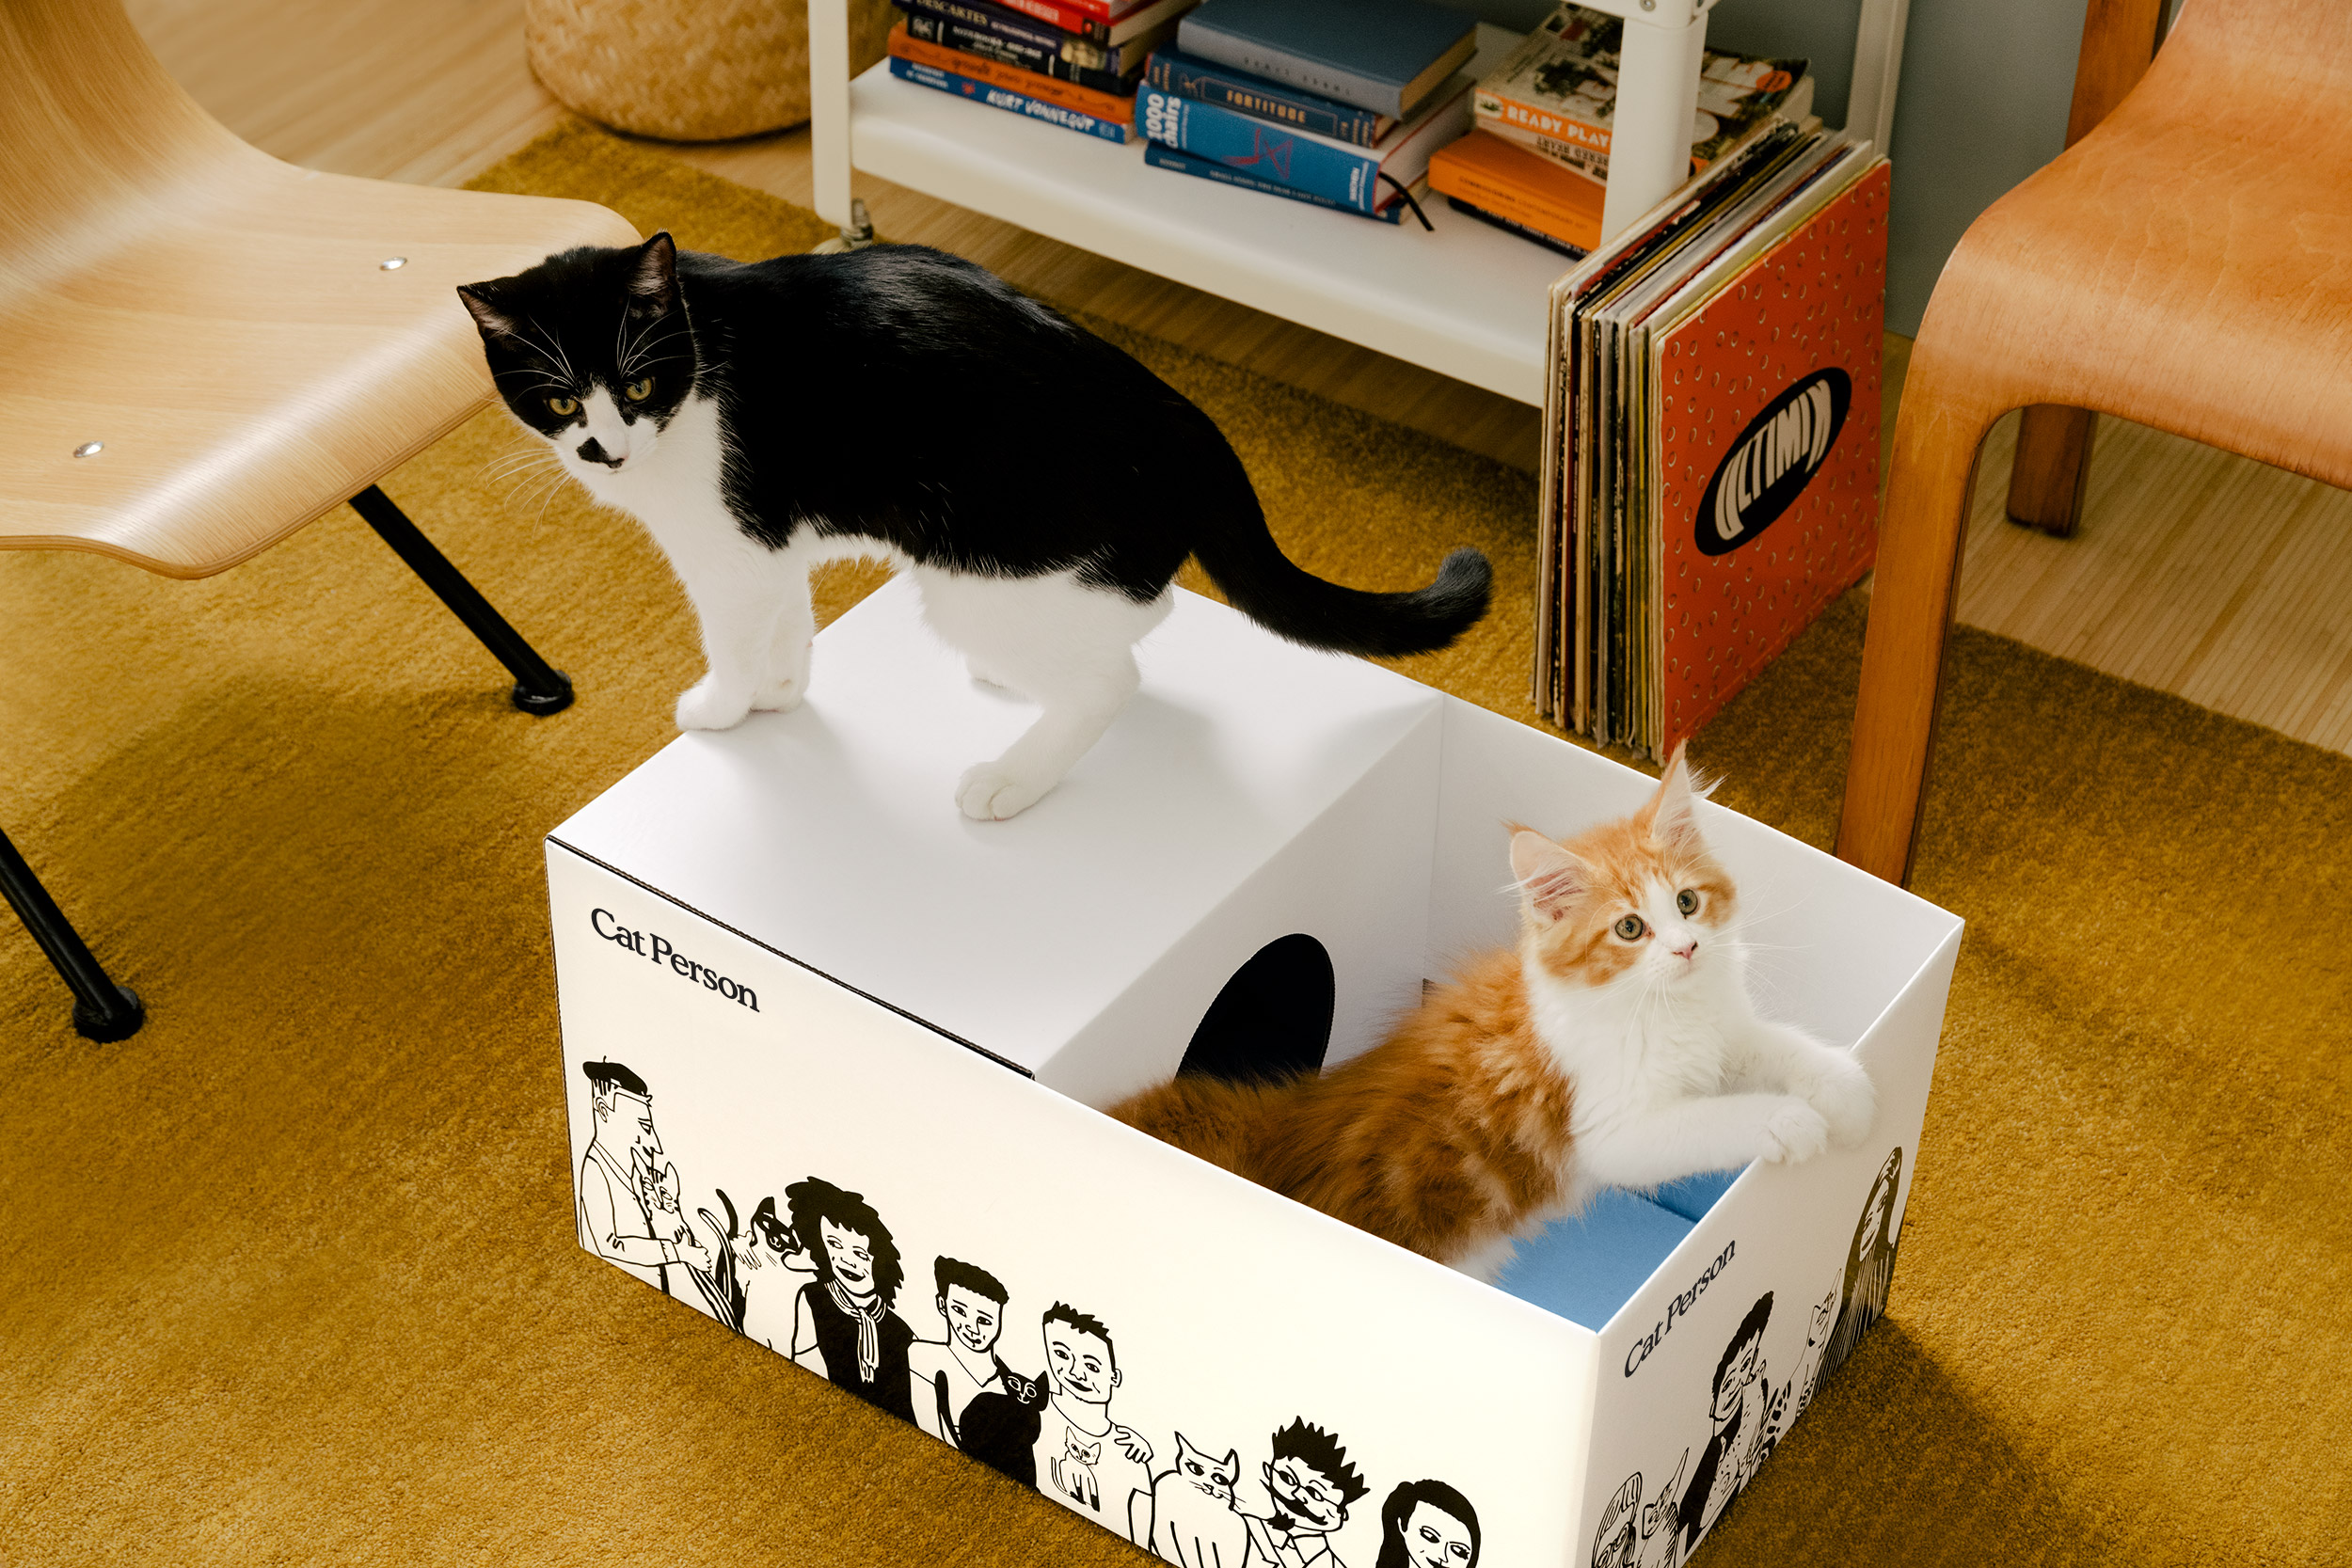 19_11_05-Cat-Person_CAT-BOX_198